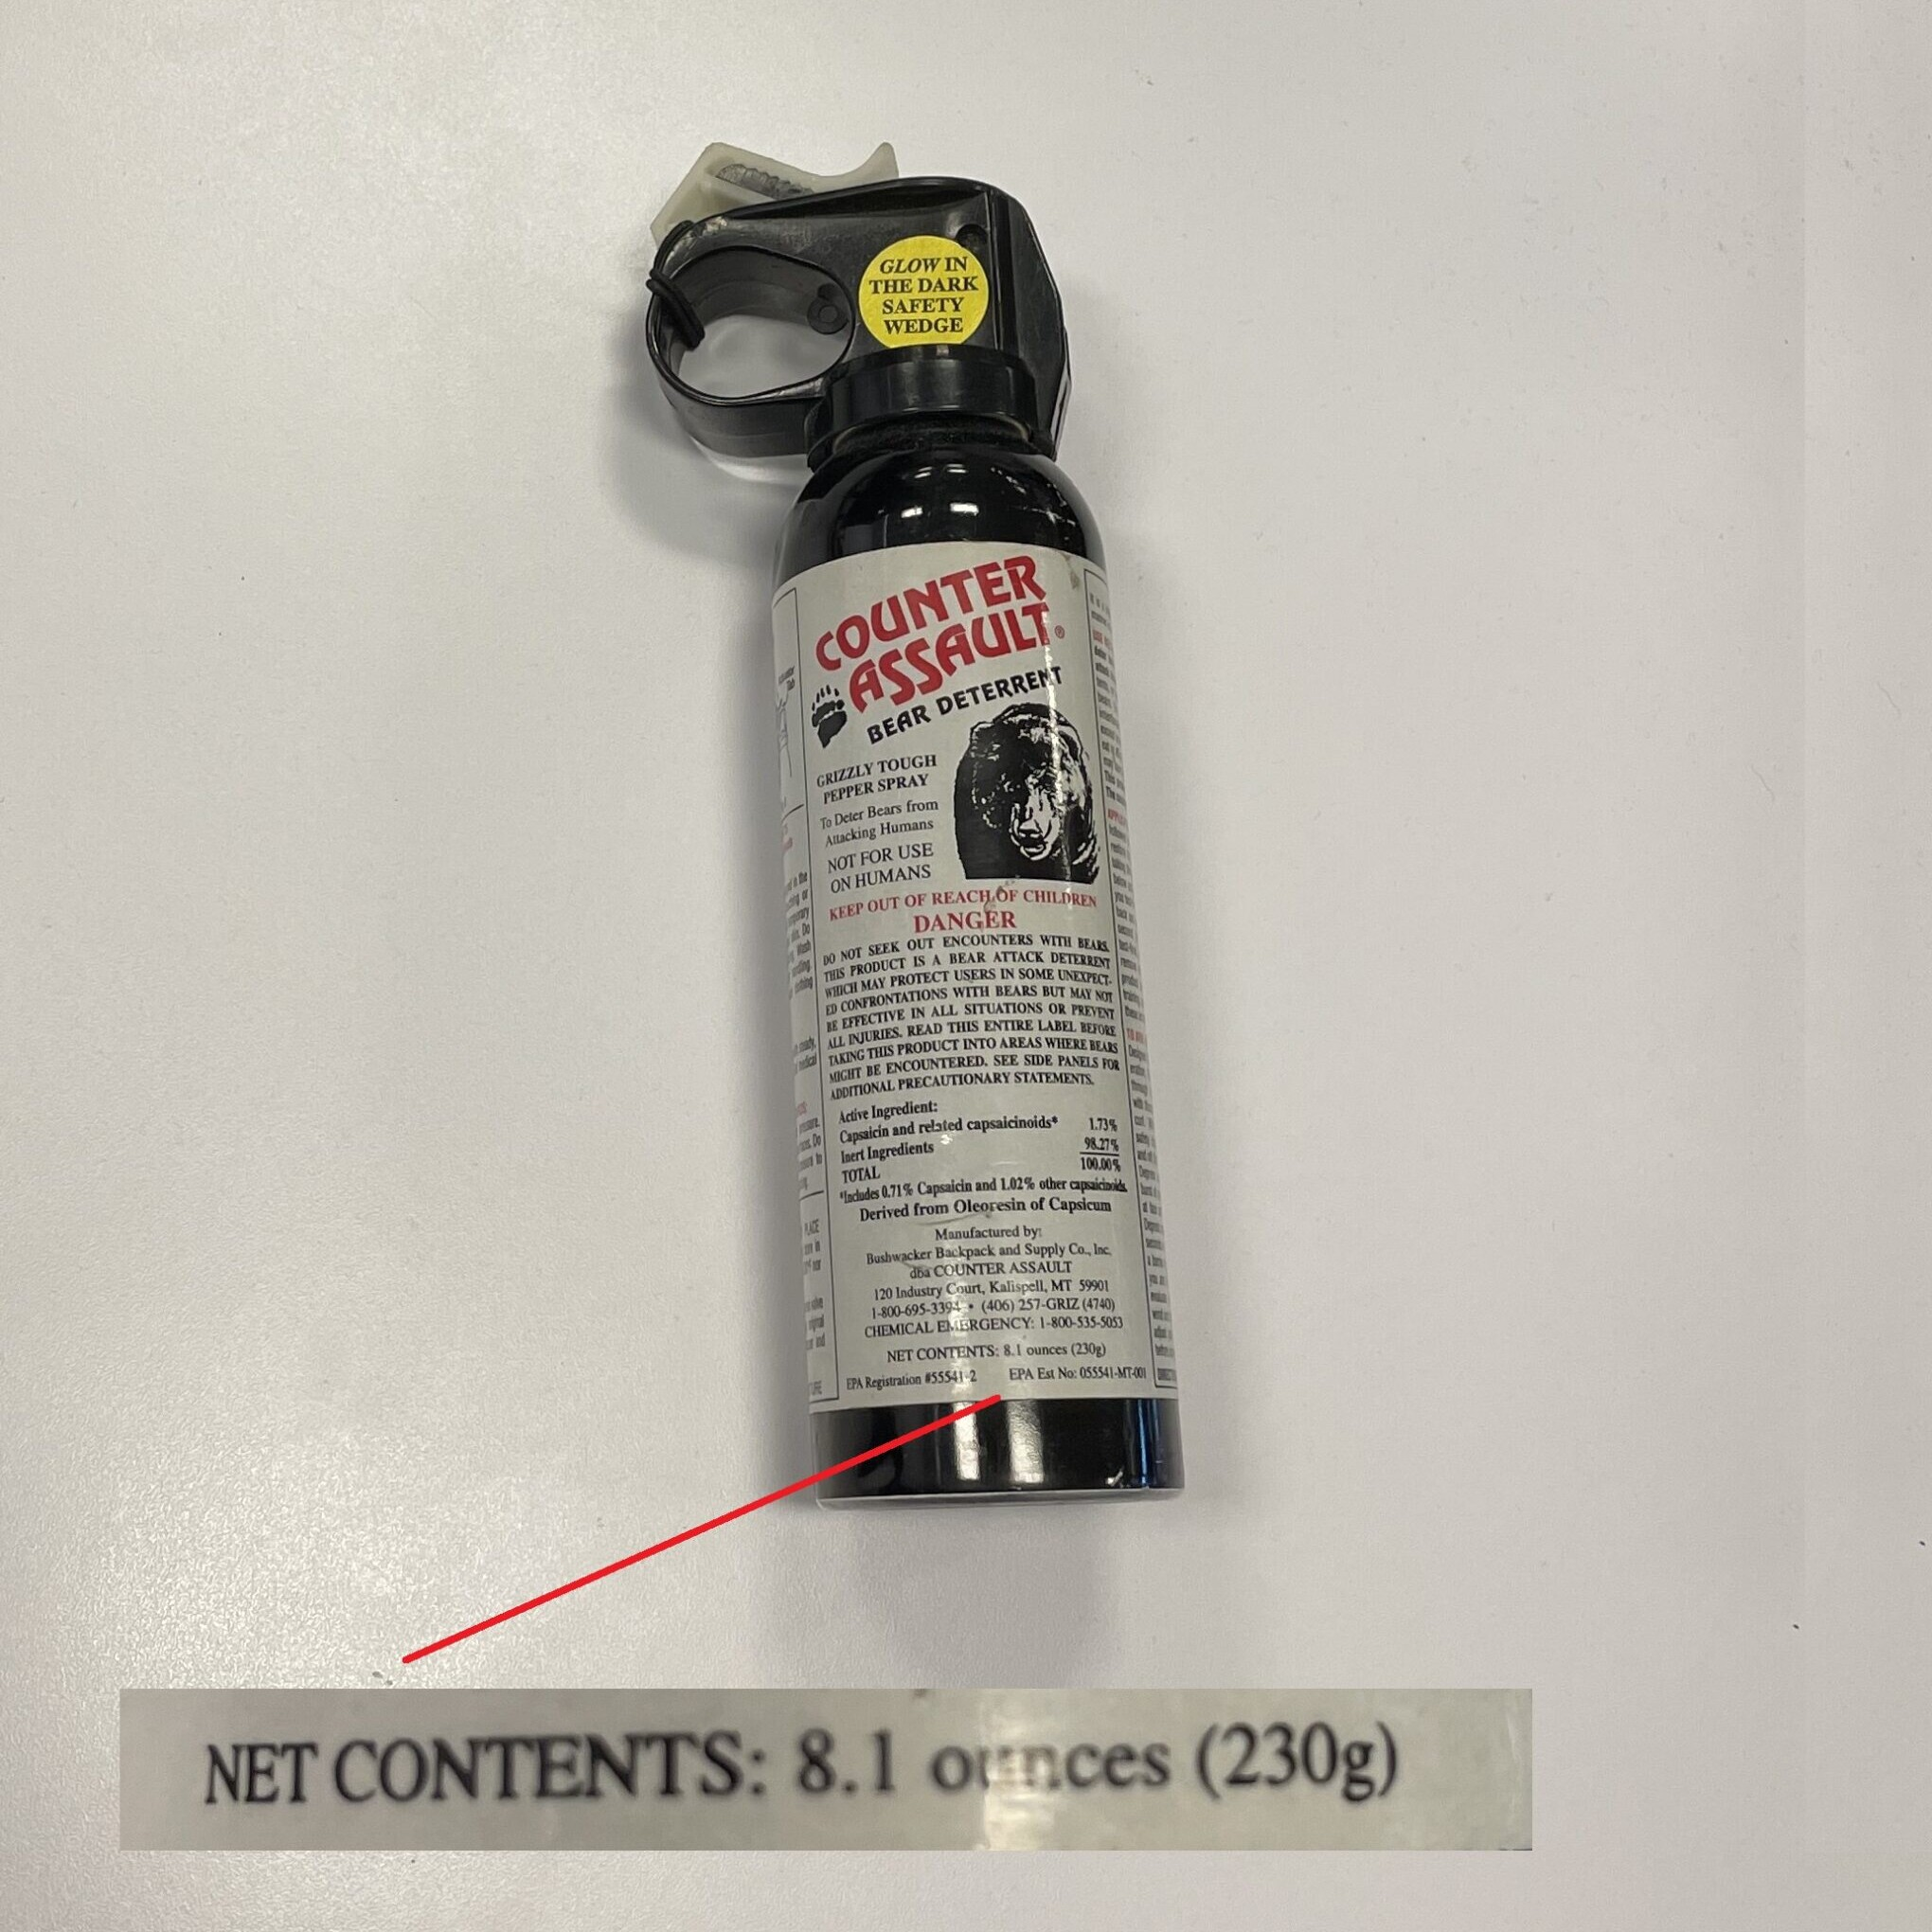 A can of bear spray with with an arrow pointing to how many ounces are in the can